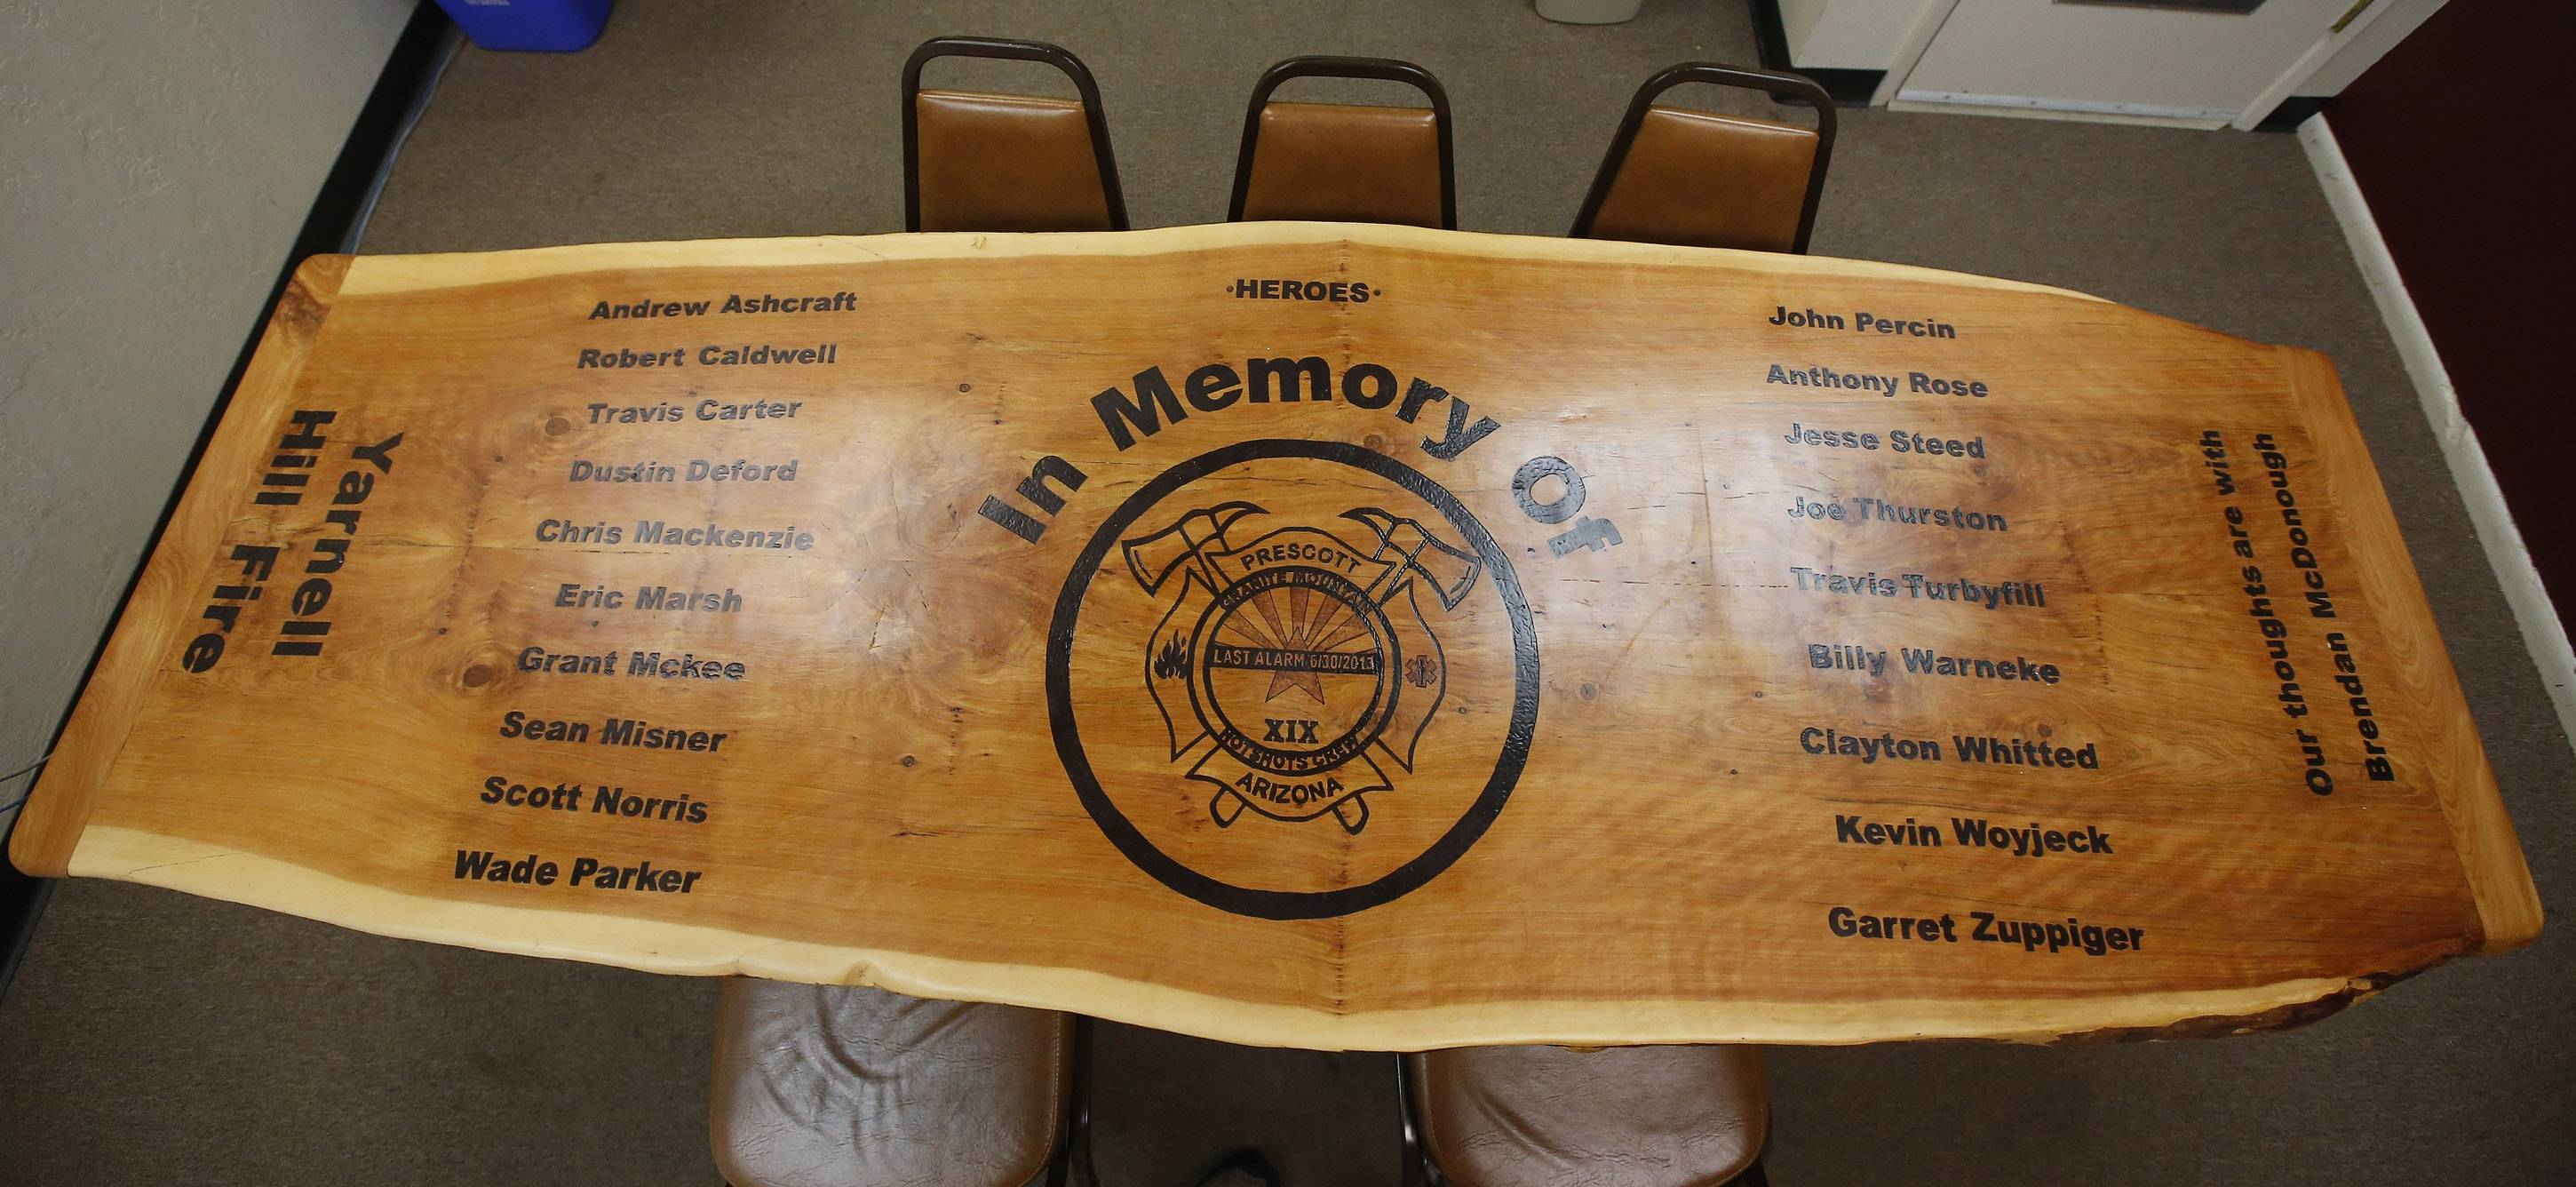 Inside the Granite Mountain Hotshots firehouse there are several memorial reminders of the 19 hotshot crew members killed fighting a wildfire nearly a year ago, this one a handmade wooden table, on Tuesday, June 24, 2014, in Prescott, Ariz.